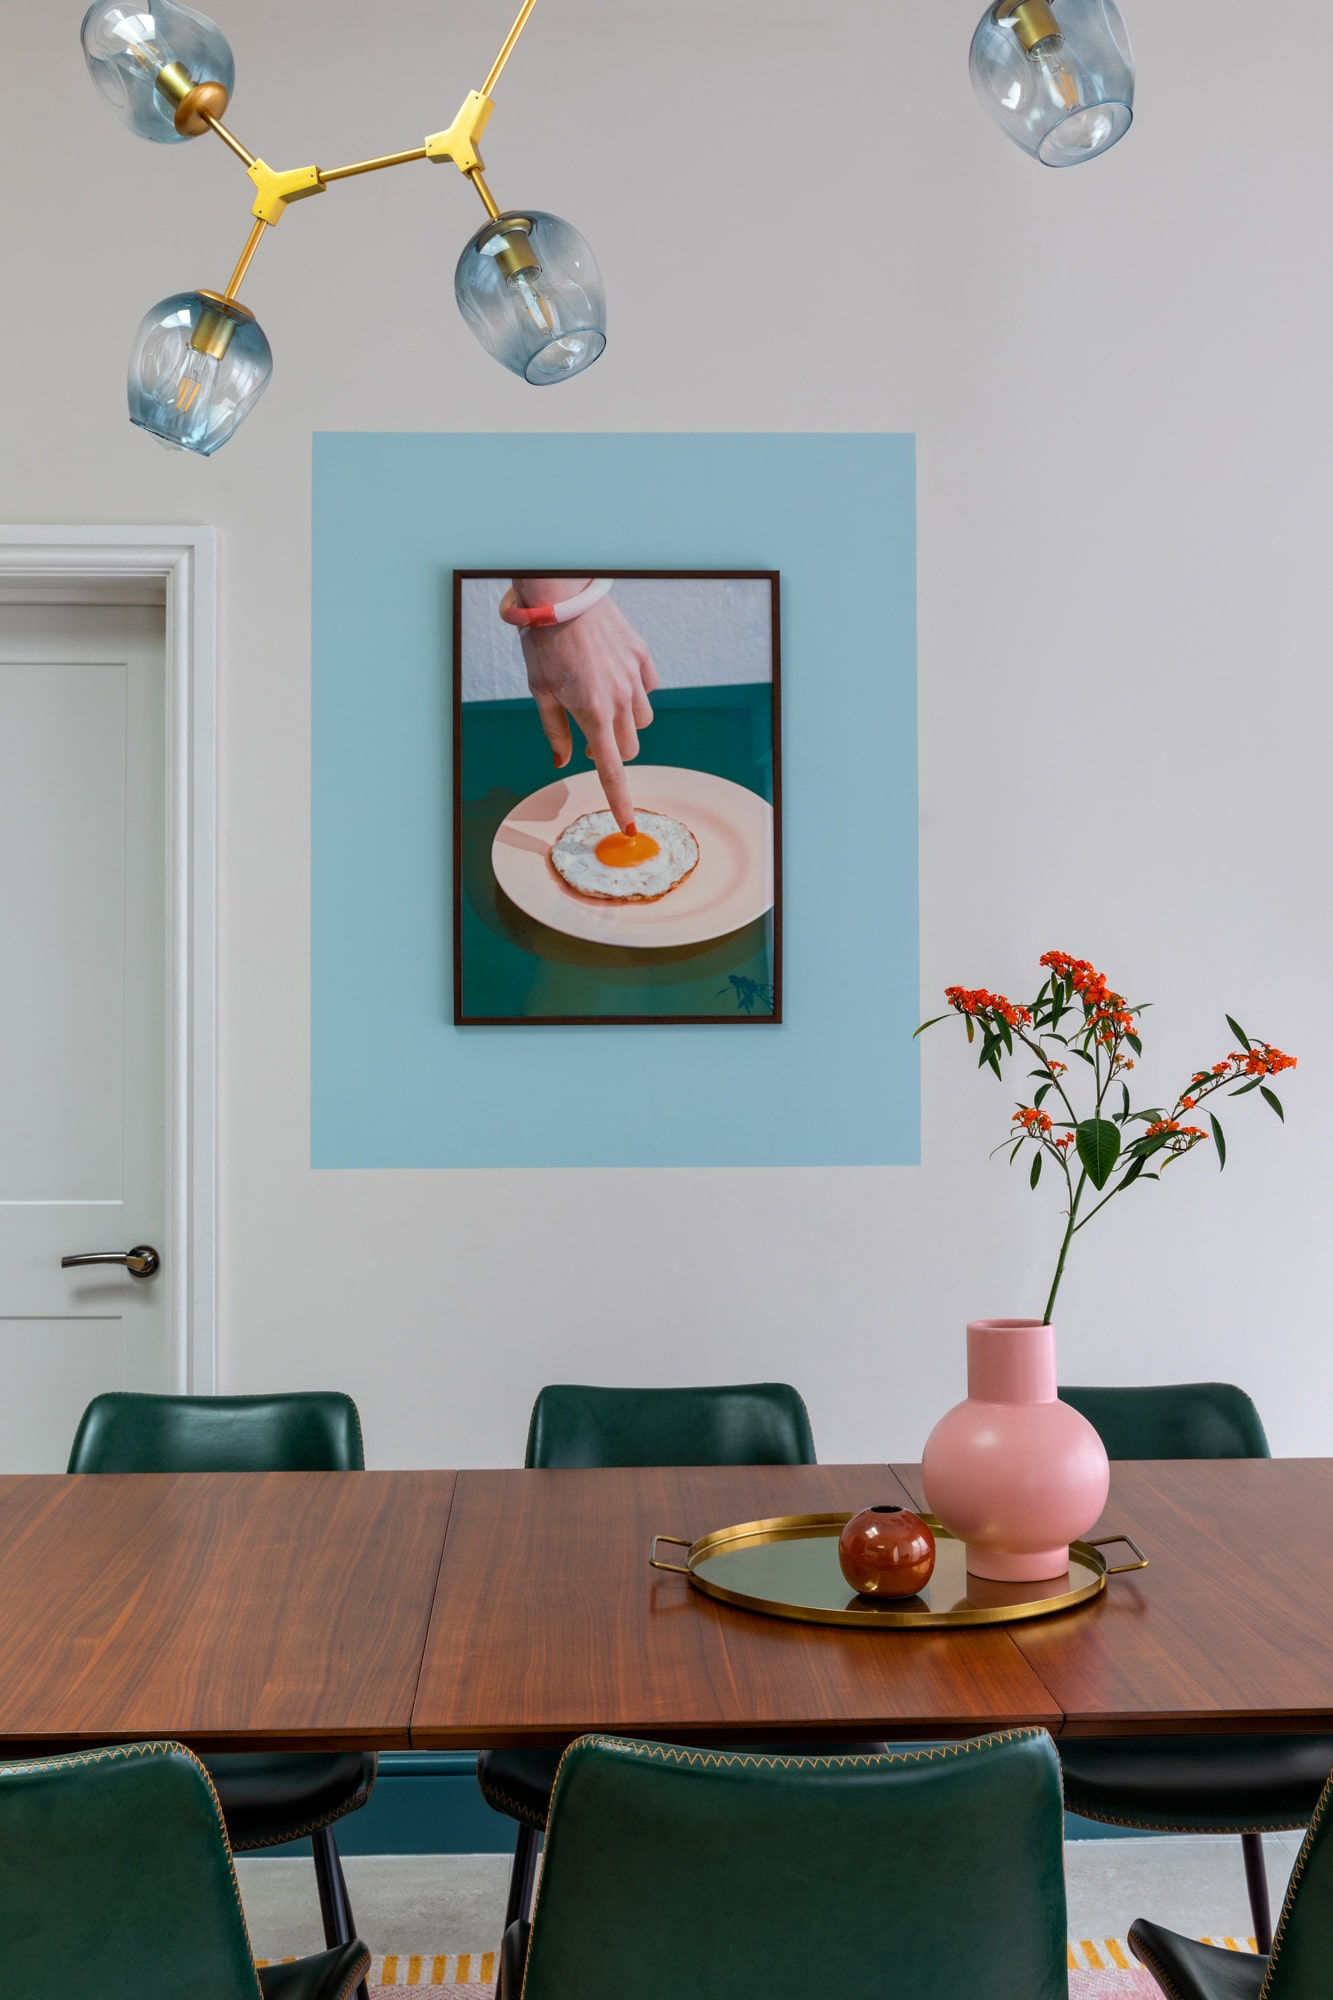 Interior photograph: a detail shot of a  wooden dinning table, three green chairs, a round tray with pink vase on the tray. A beautiful poster on the wall with a female hand pointing on a fried egg on a plate in a blue frame.